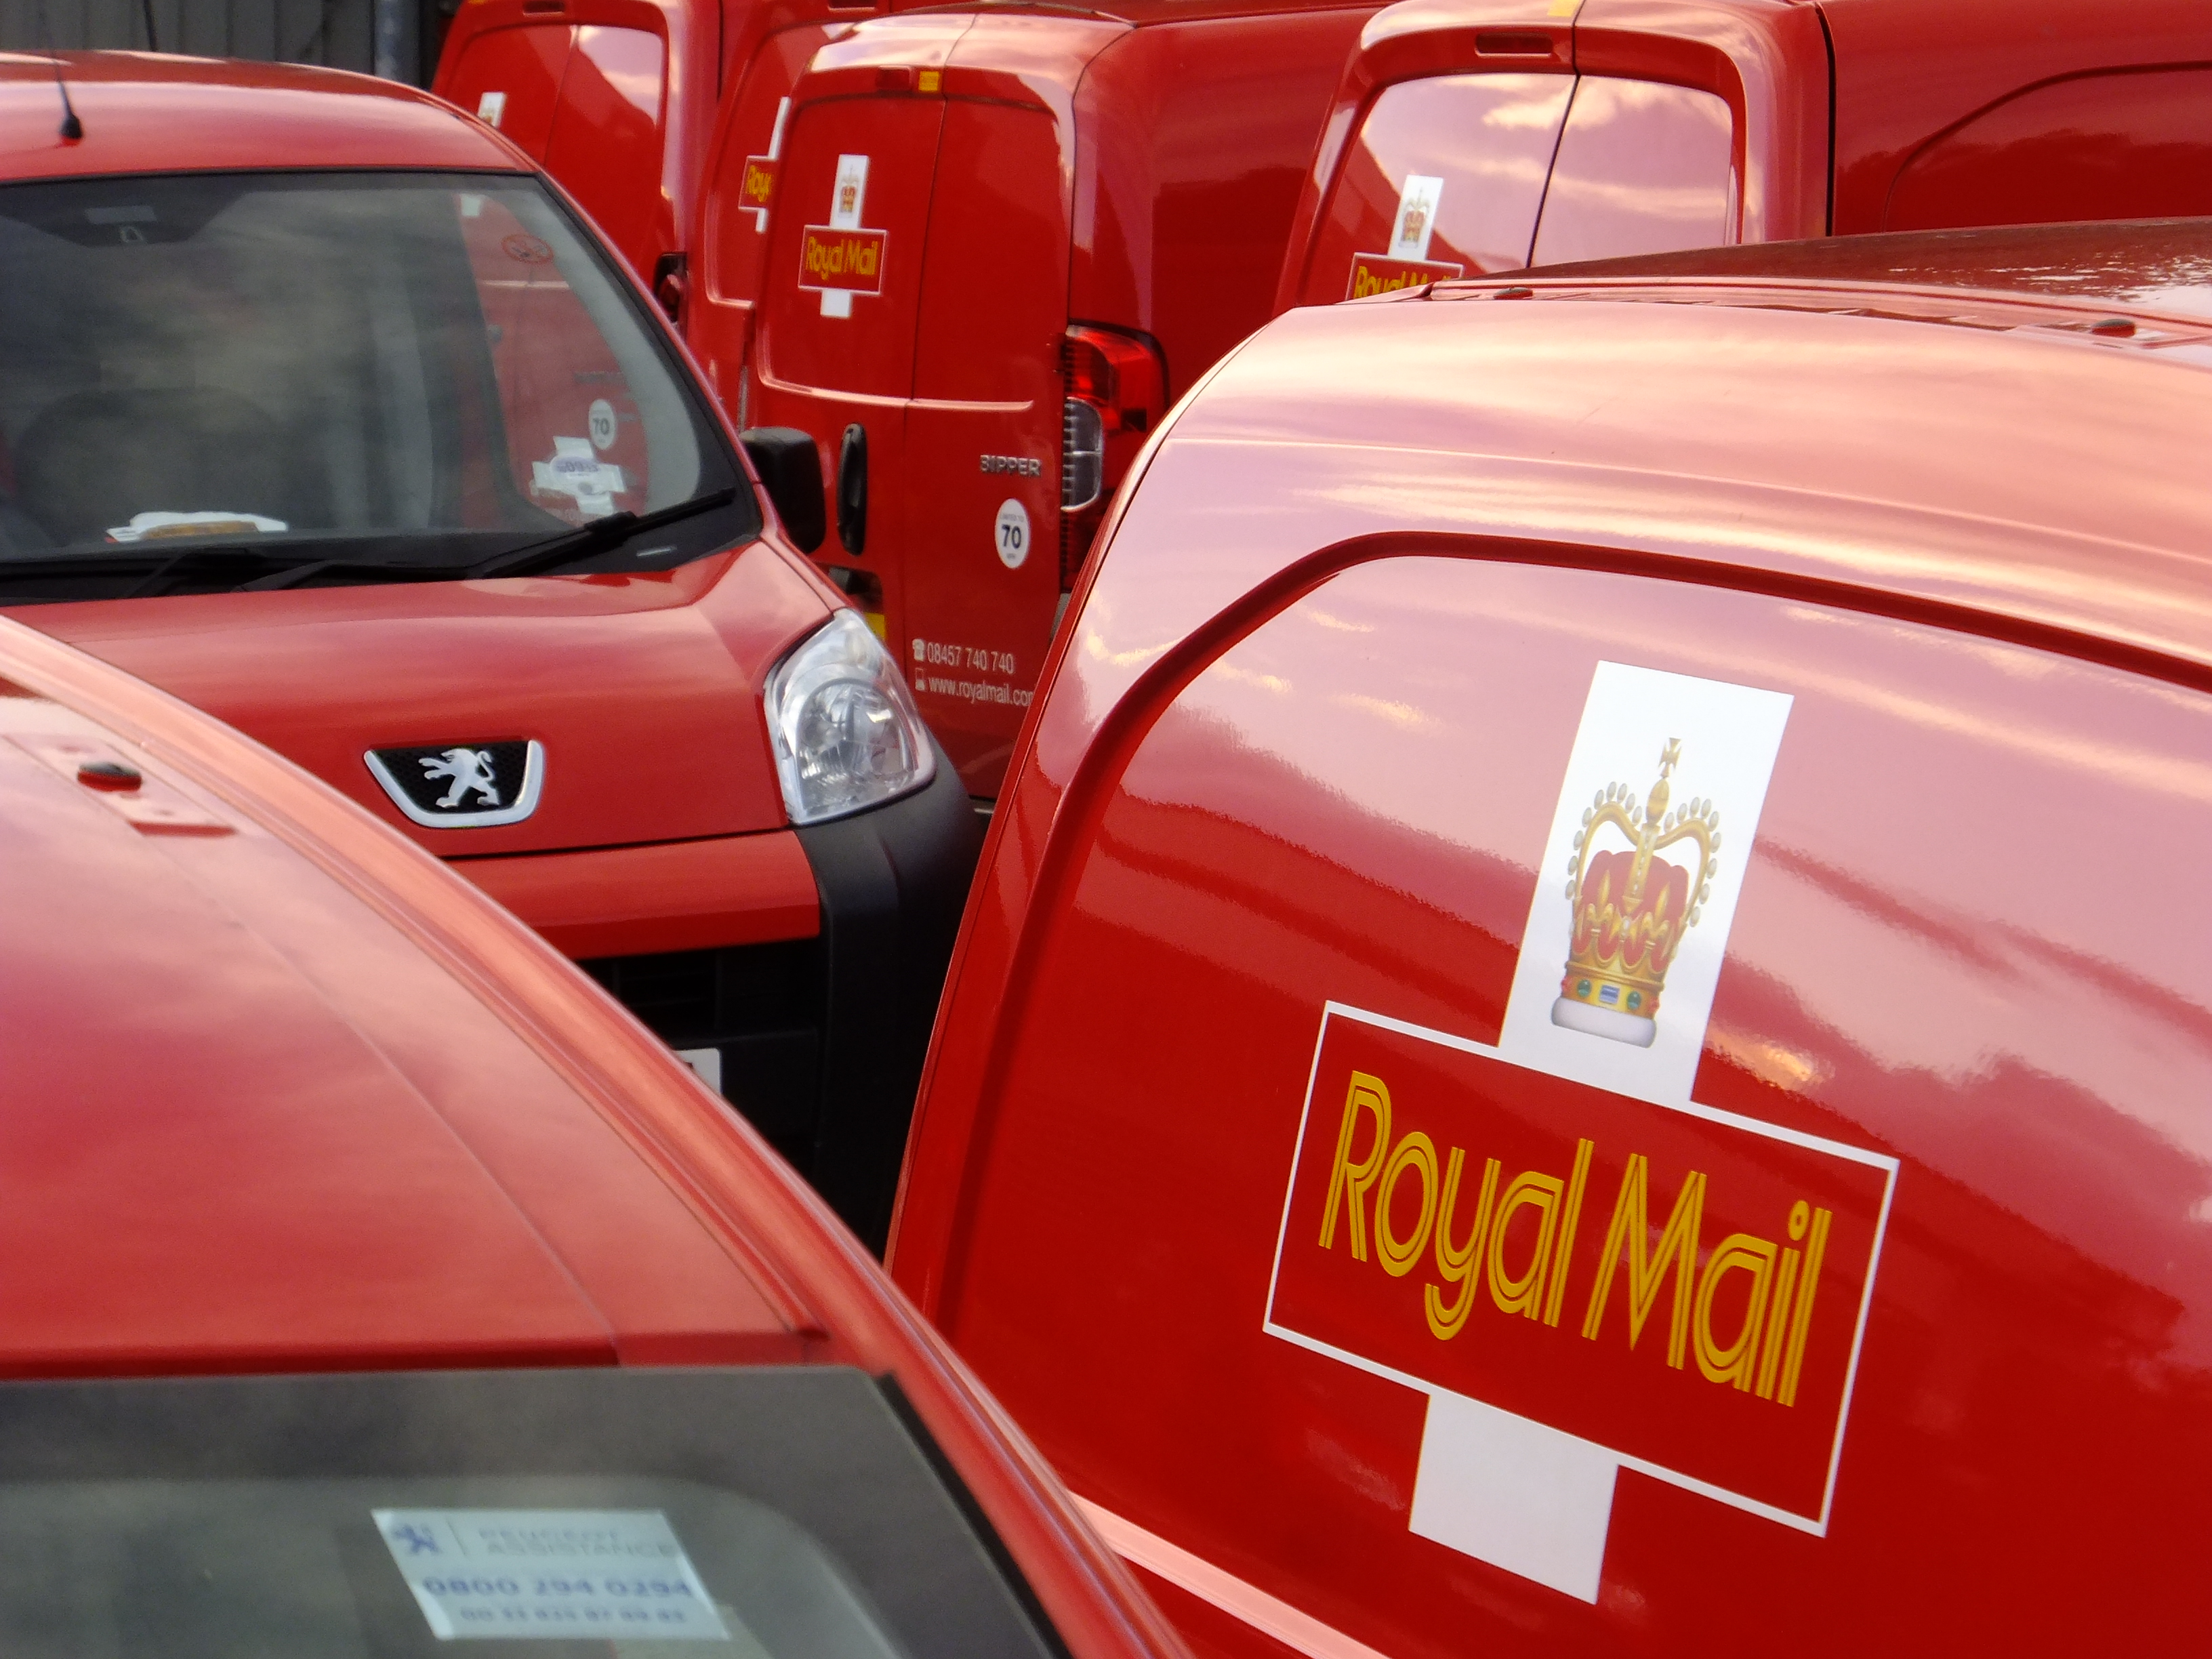 Gullands Solicitors Community - Royal Mail Sorting office vans